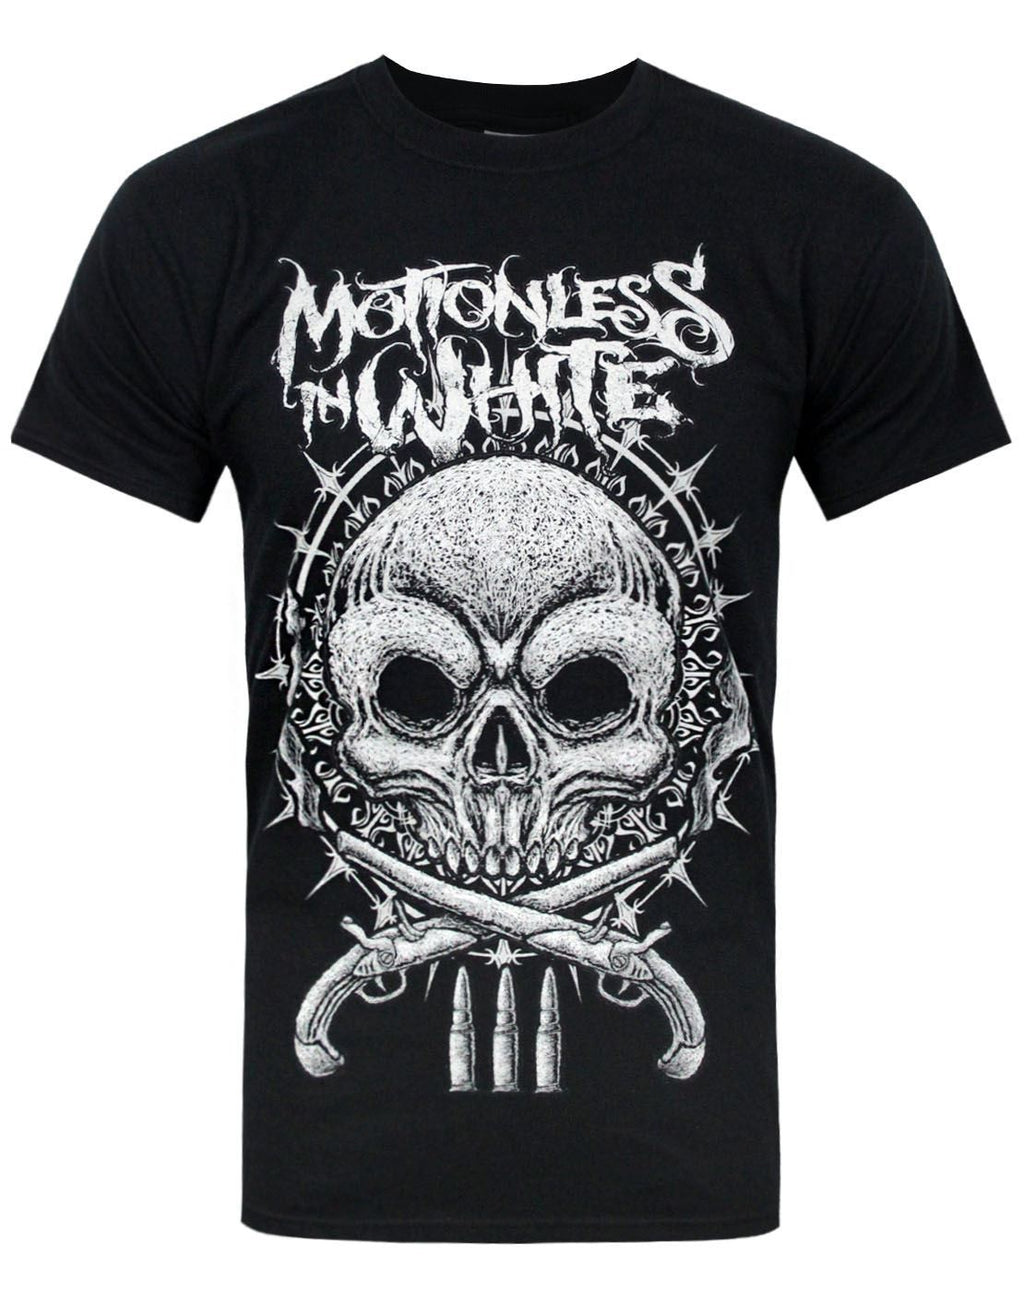 Motionless In White Pistols Men's T-Shirt